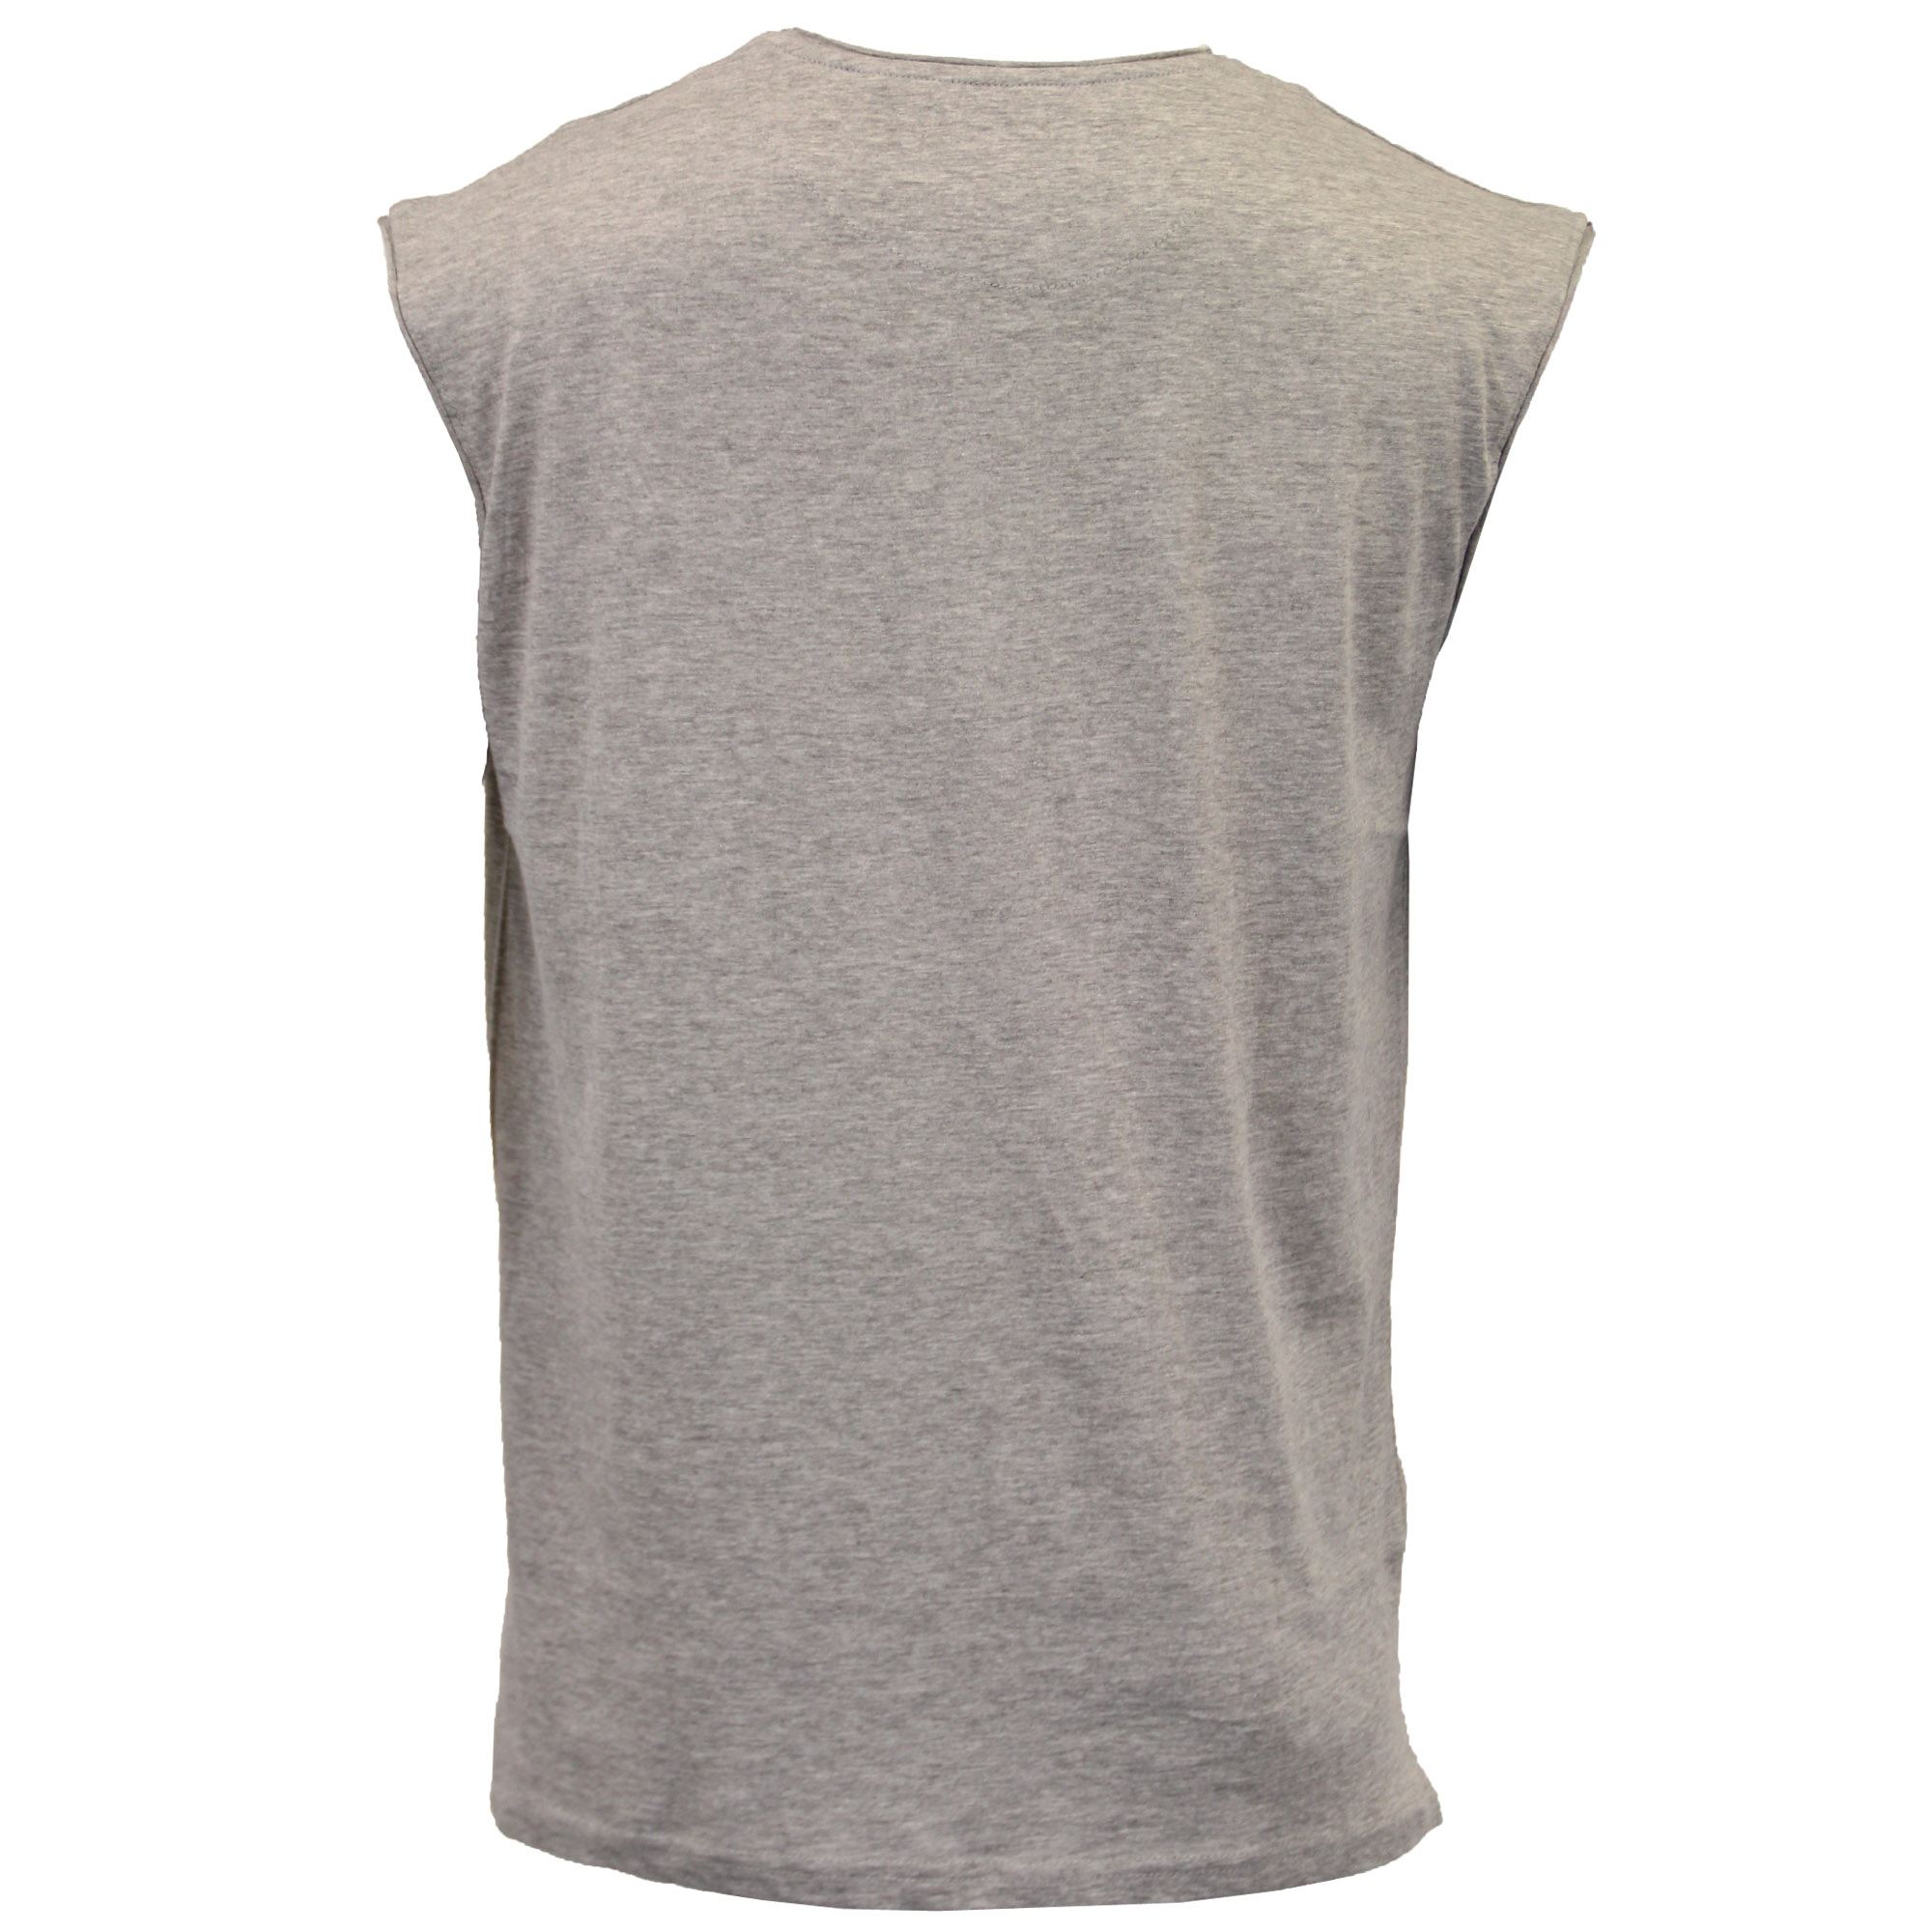 Mens-Vest-Brave-Soul-Tank-Top-Varley-Gym-Training-Crew-Neck-Casual-Summer-New thumbnail 8